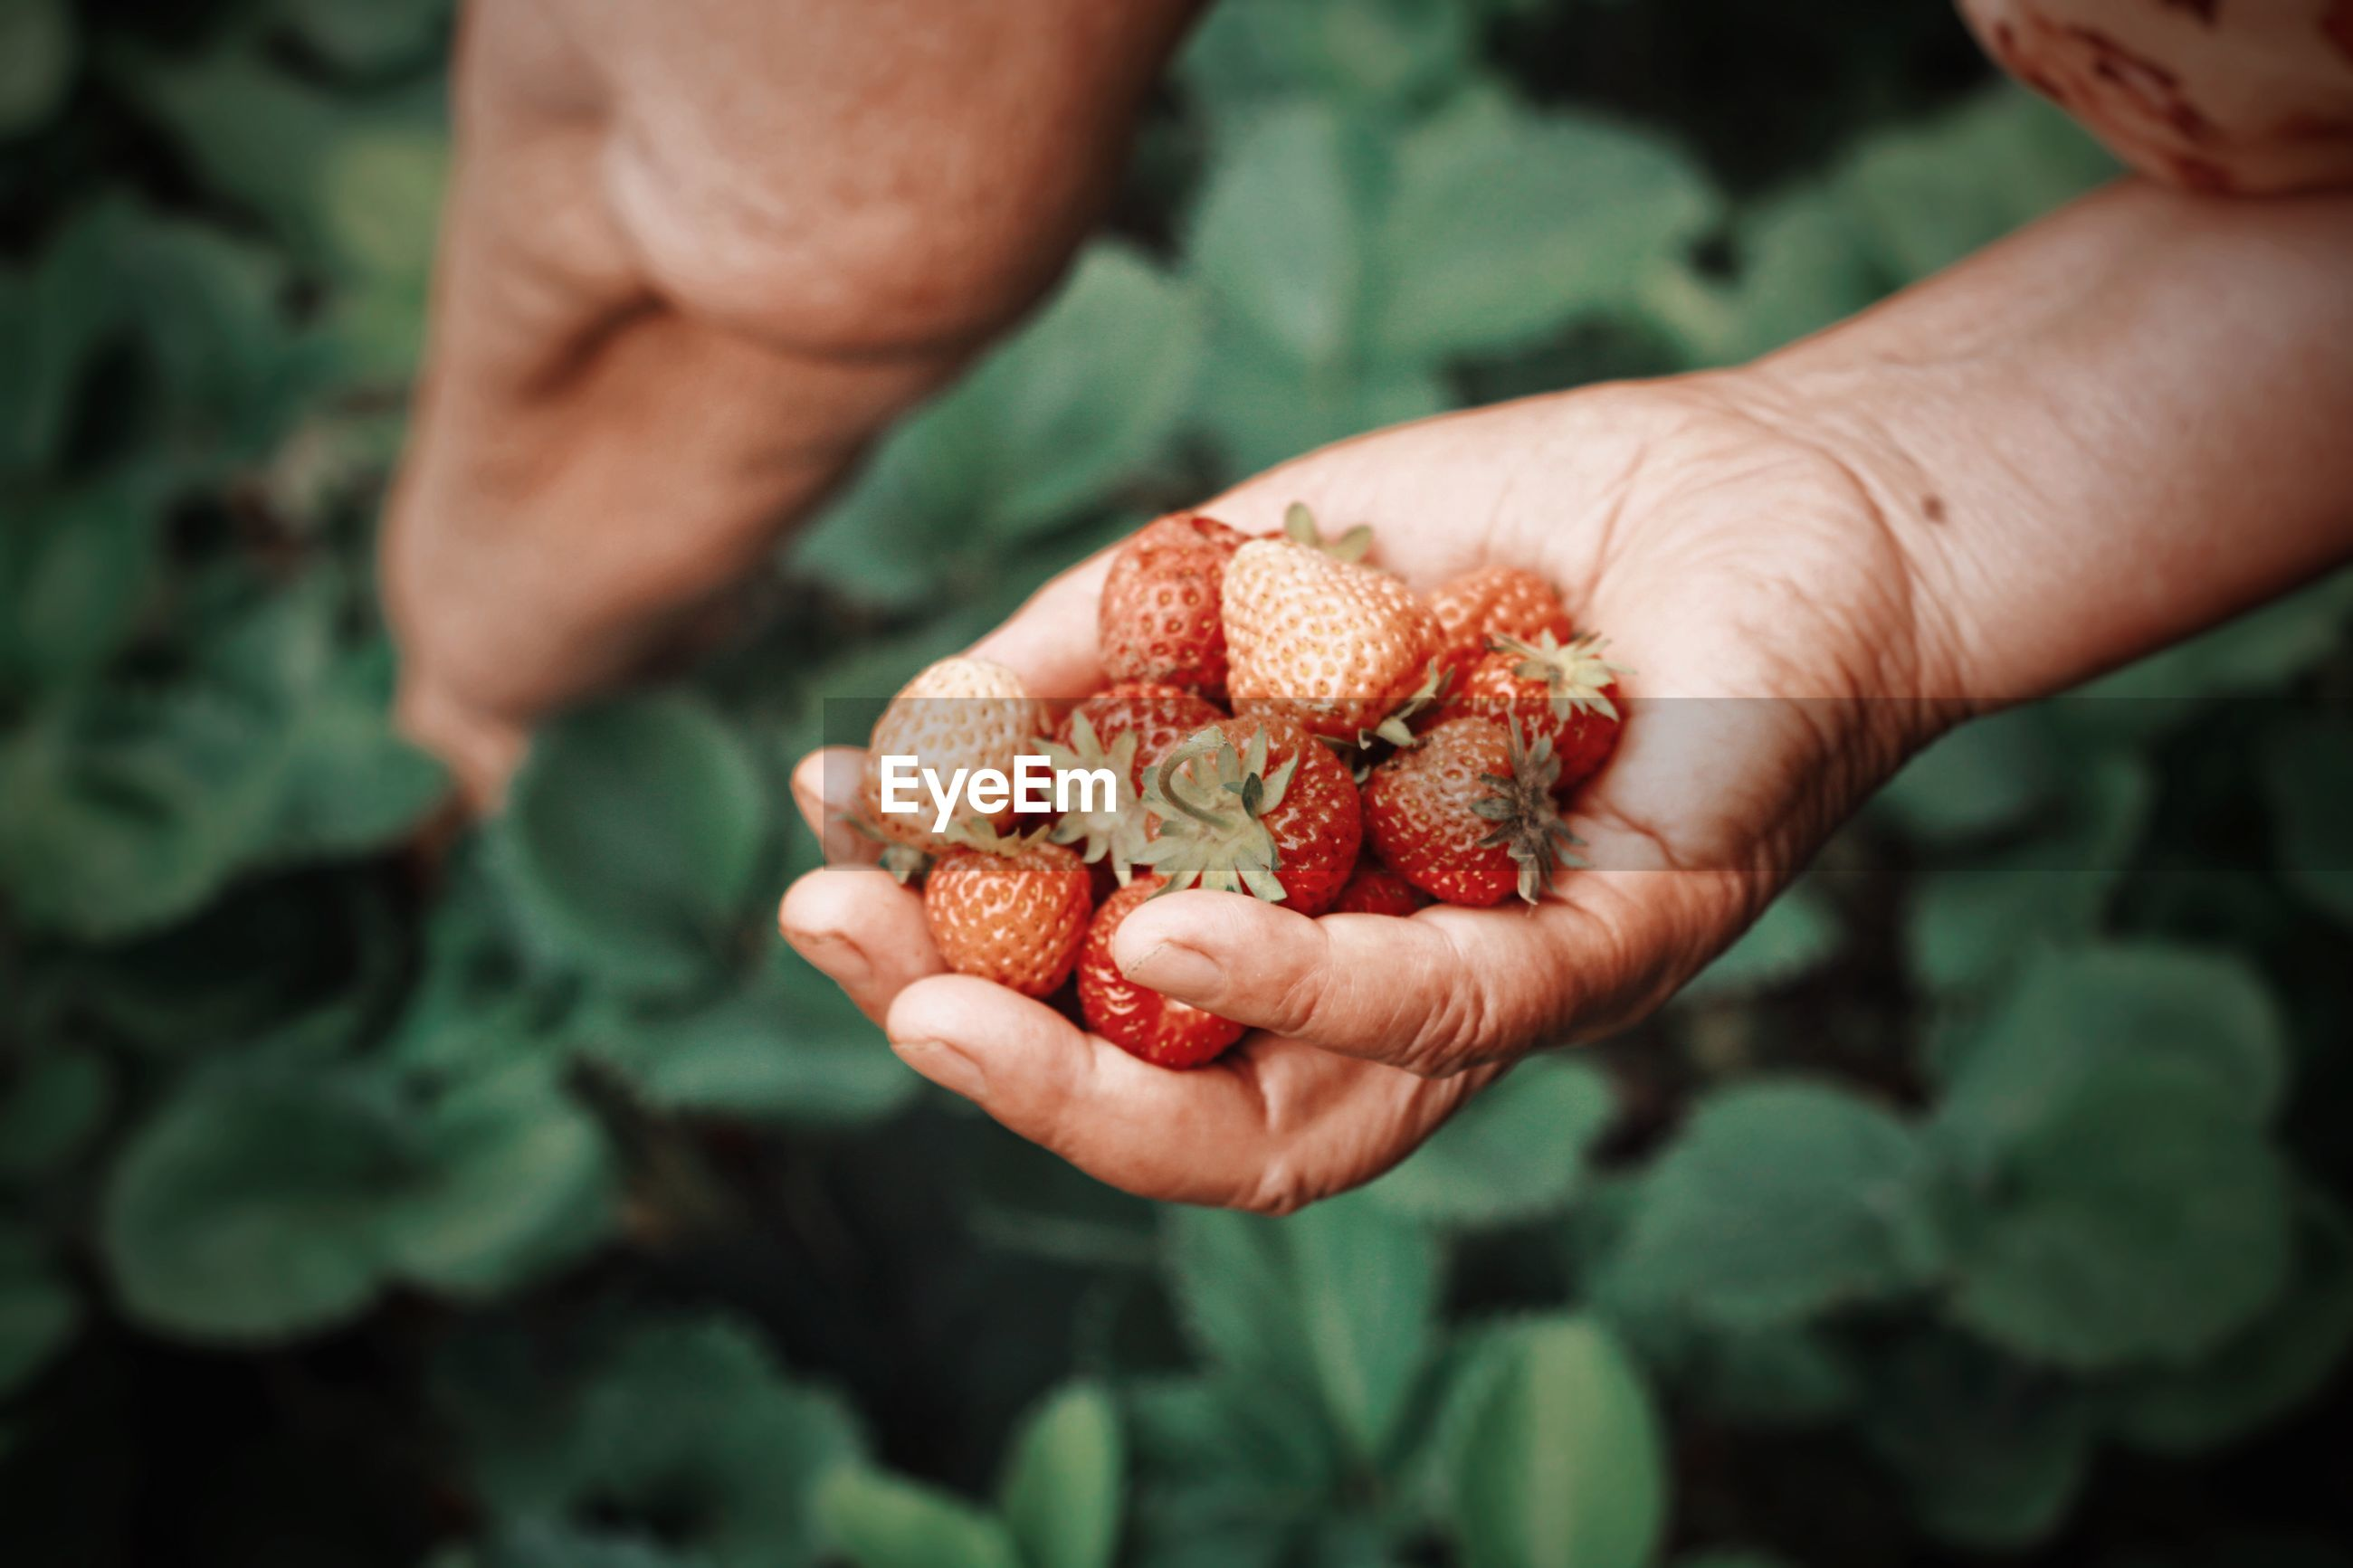 Close-up of cropped hand holding strawberries